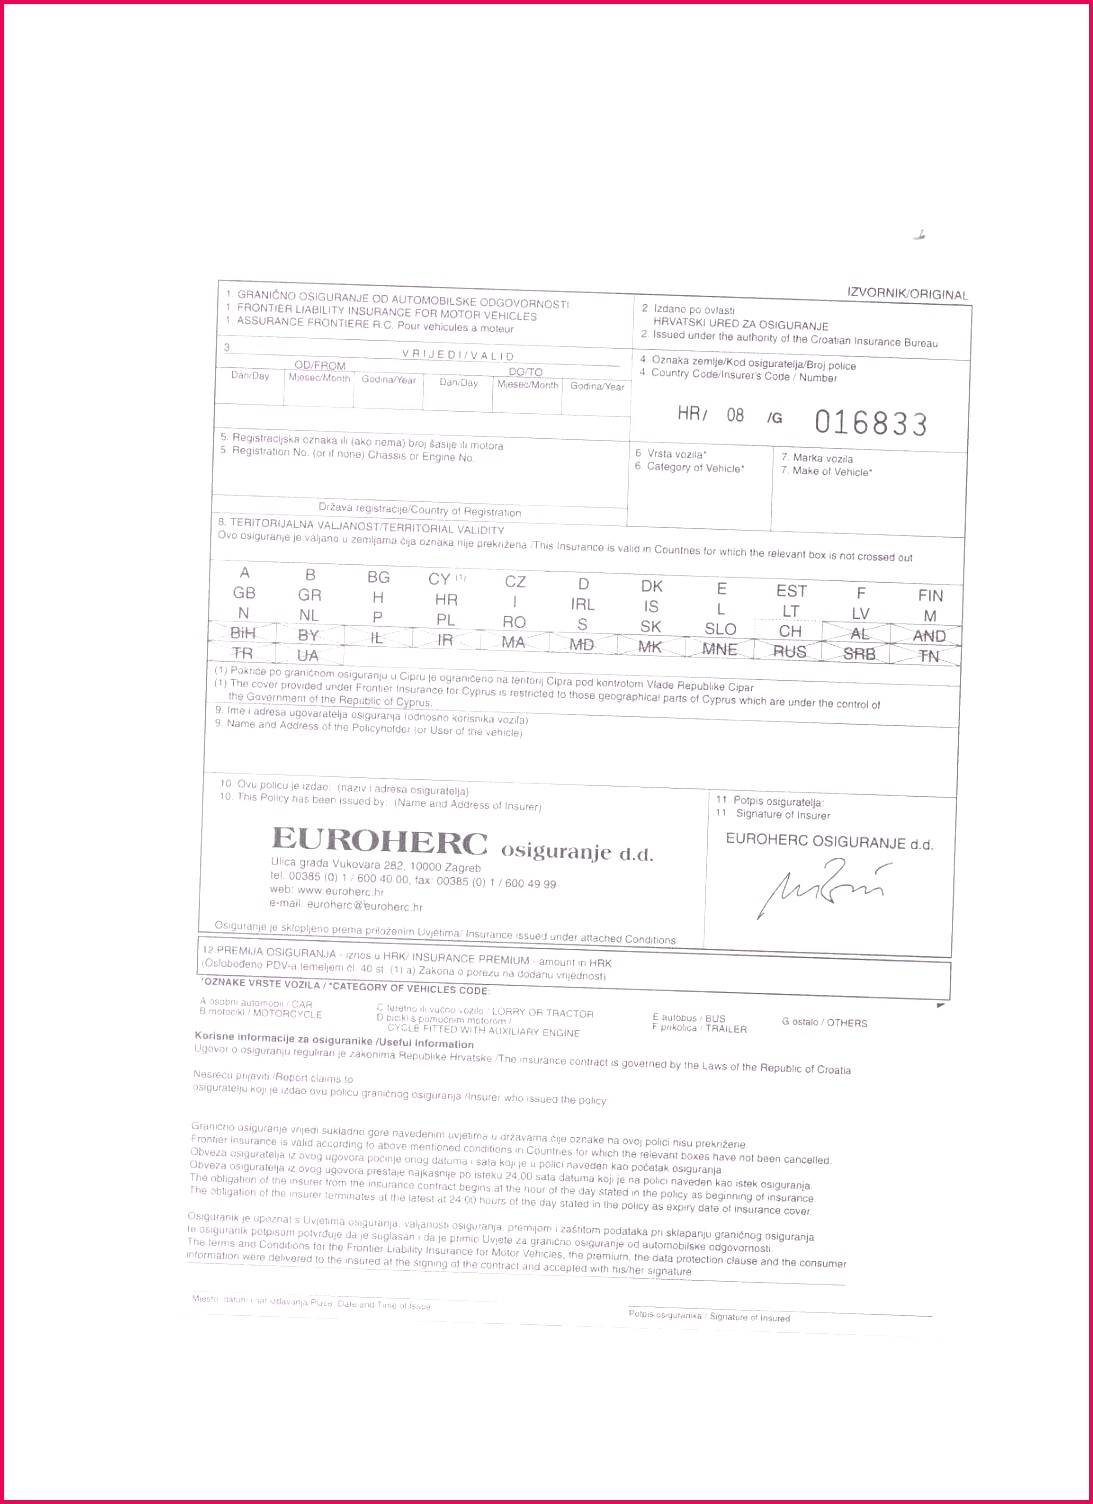 fake money t certificate template of fake money t certificate template pleasant fake t certificate template gallery editable